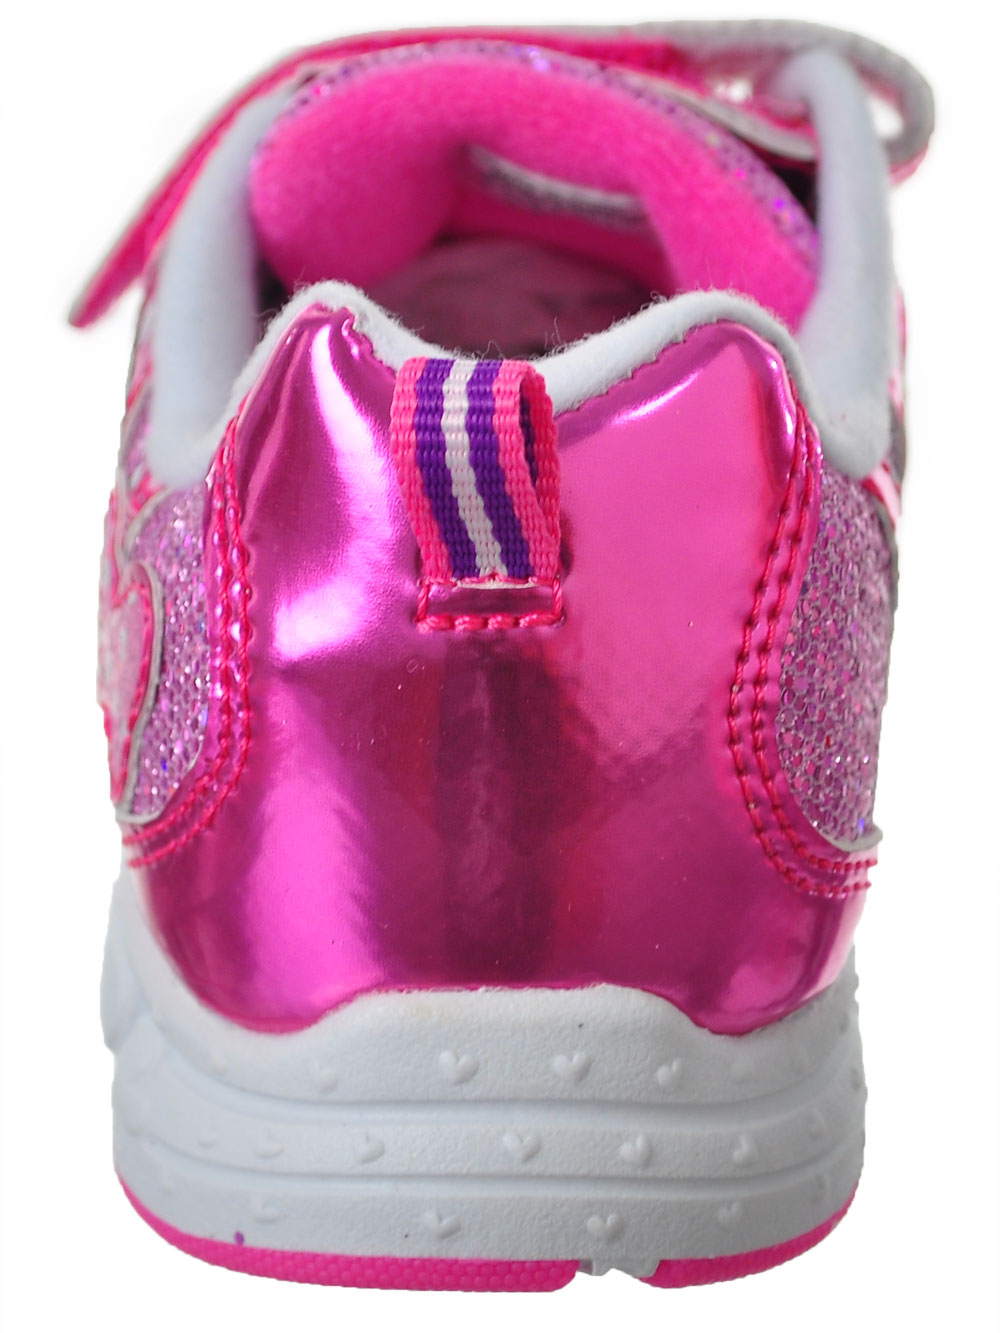 74b2a4e2b9ad Disney Minnie Mouse Girls  Light-Up Sneakers (Sizes 7 - 12)